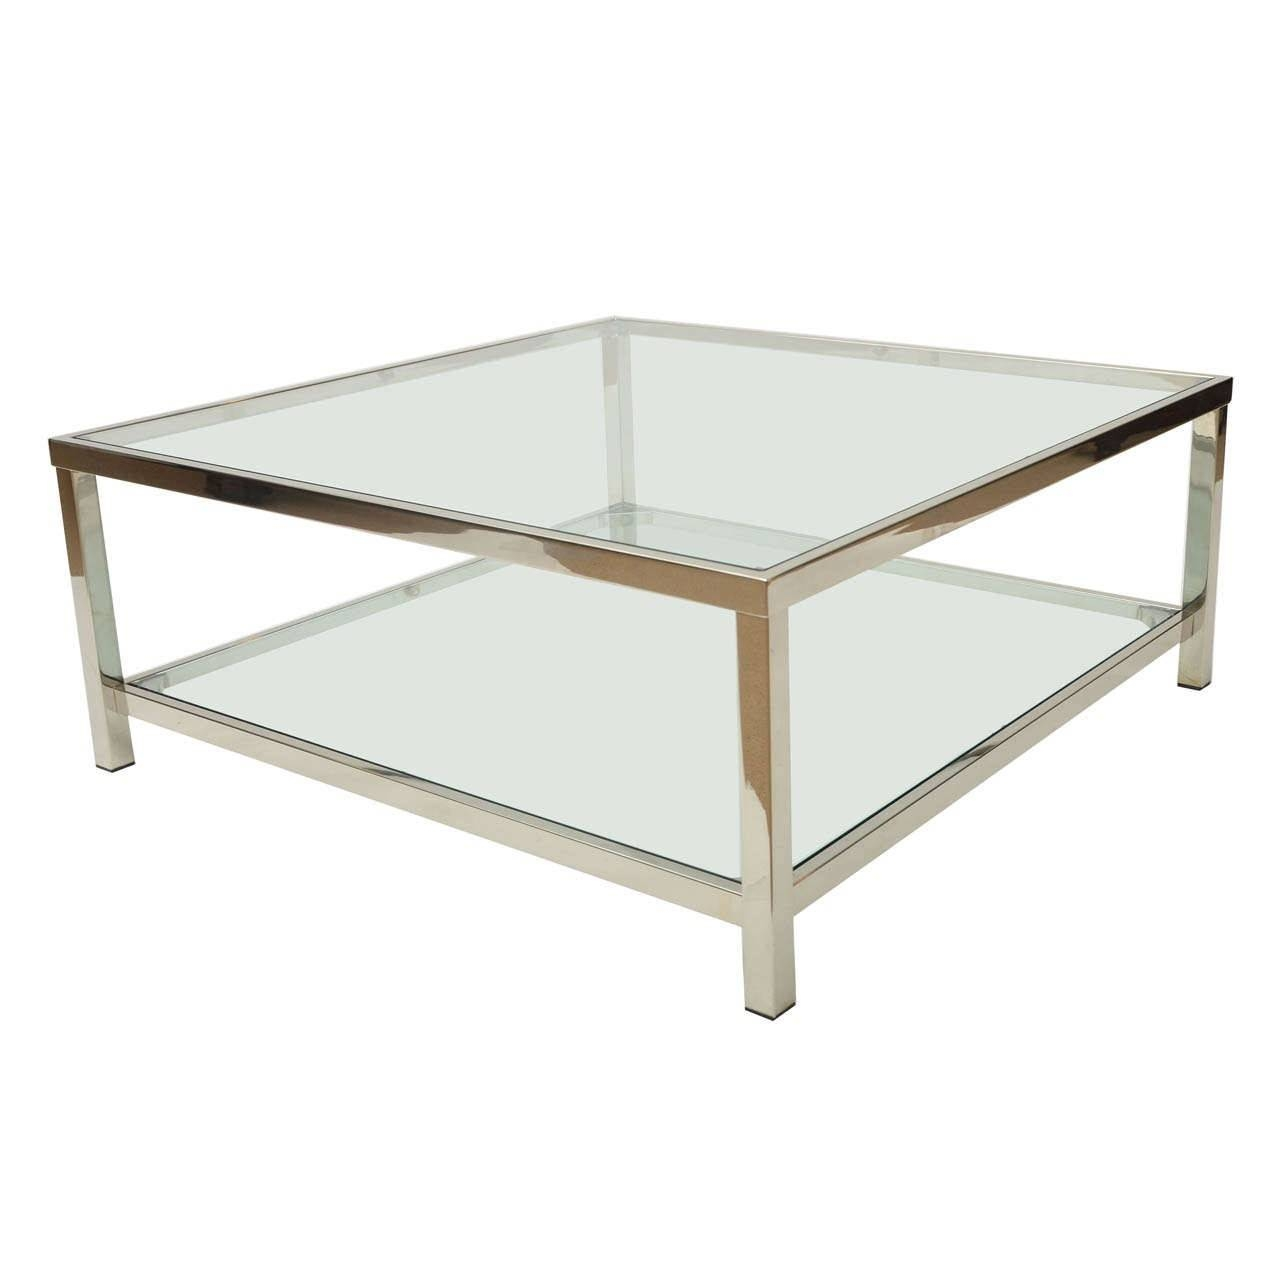 Furniture. Chrome And Glass Coffee Table Design Ideas: Clear pertaining to Modern Chrome Coffee Tables (Image 18 of 30)